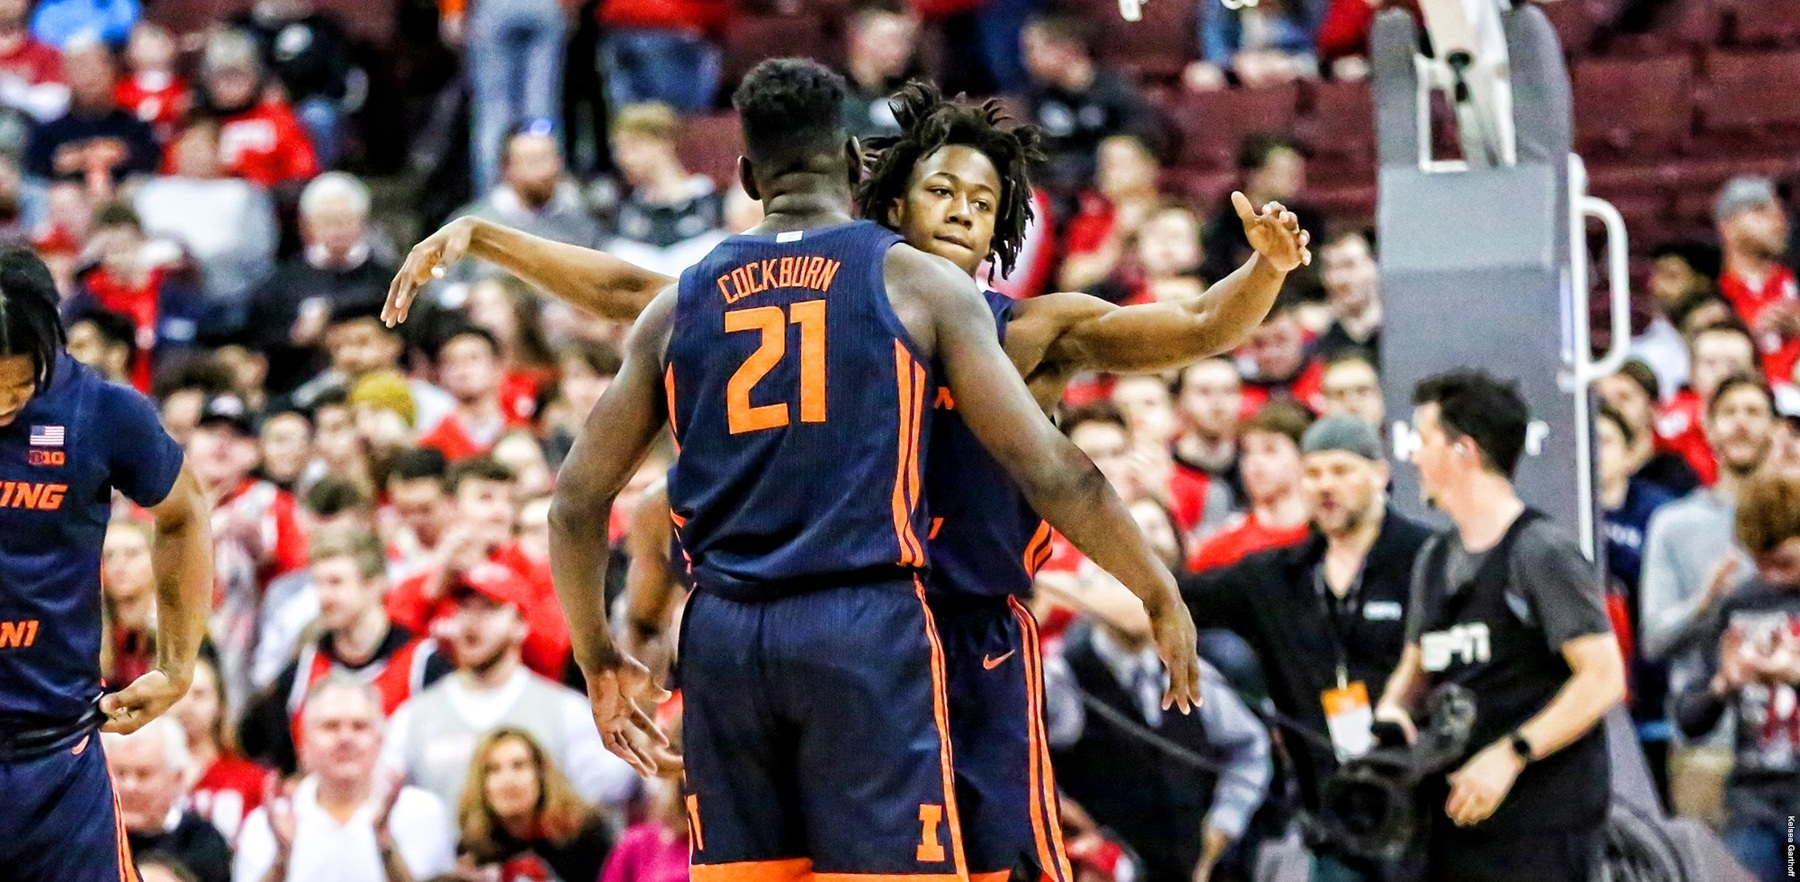 Kofi Cockburn adn Ayo Dosunmu chest bump on court